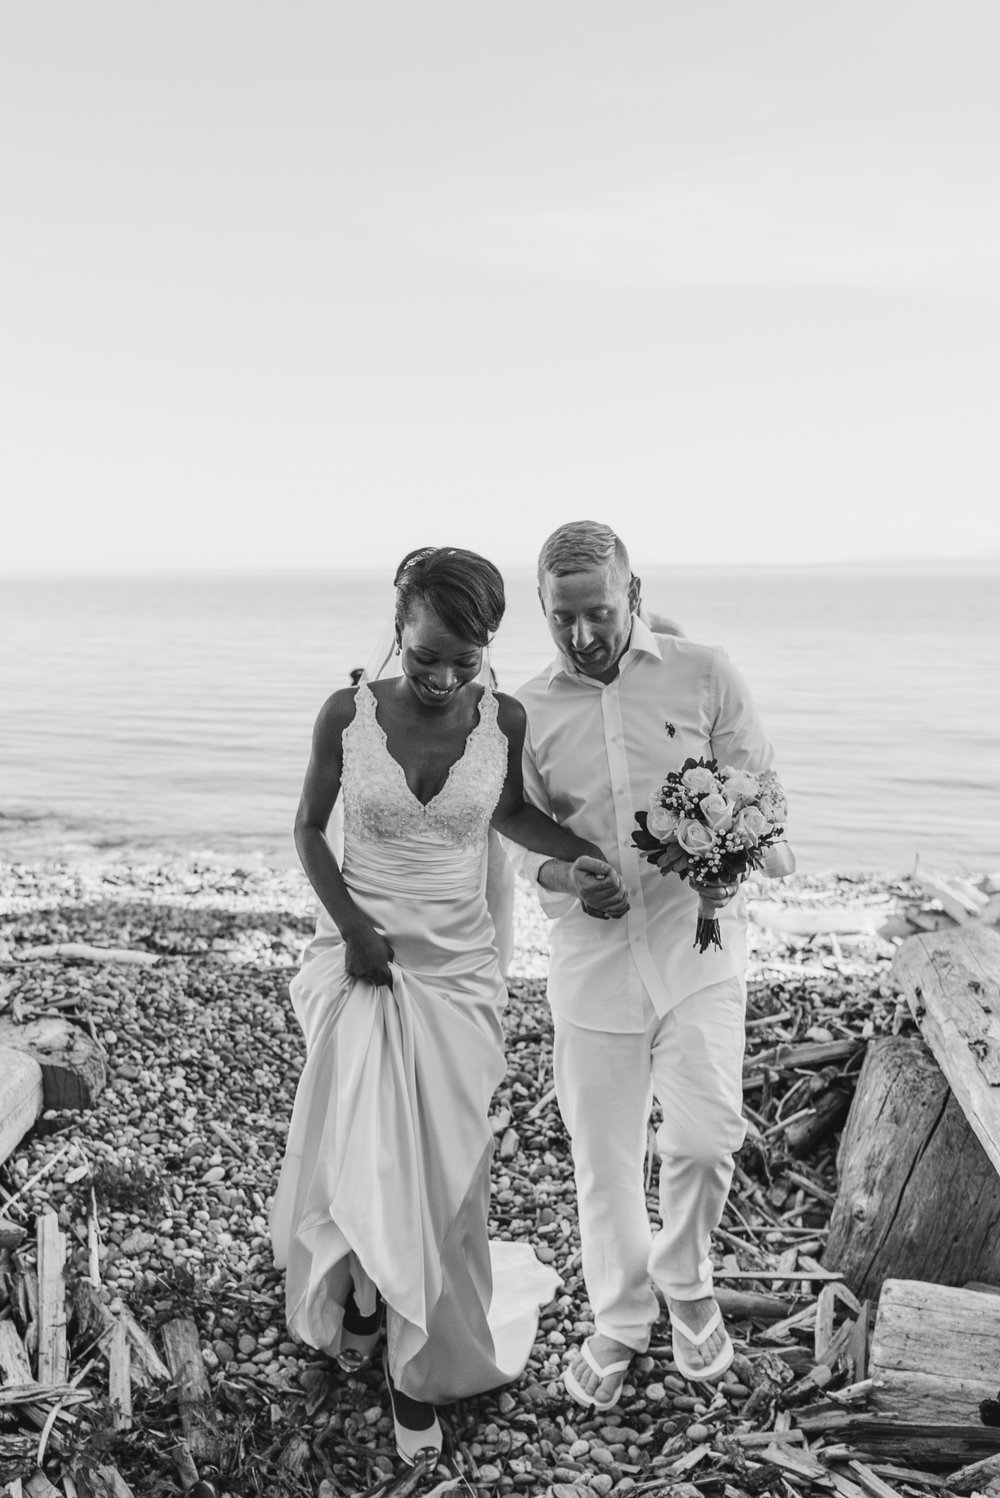 Laura Olson Photography - Sunshine Coast BC Photographer - Daniel and Milena Ceremony Summer 2016-1904-2.jpg